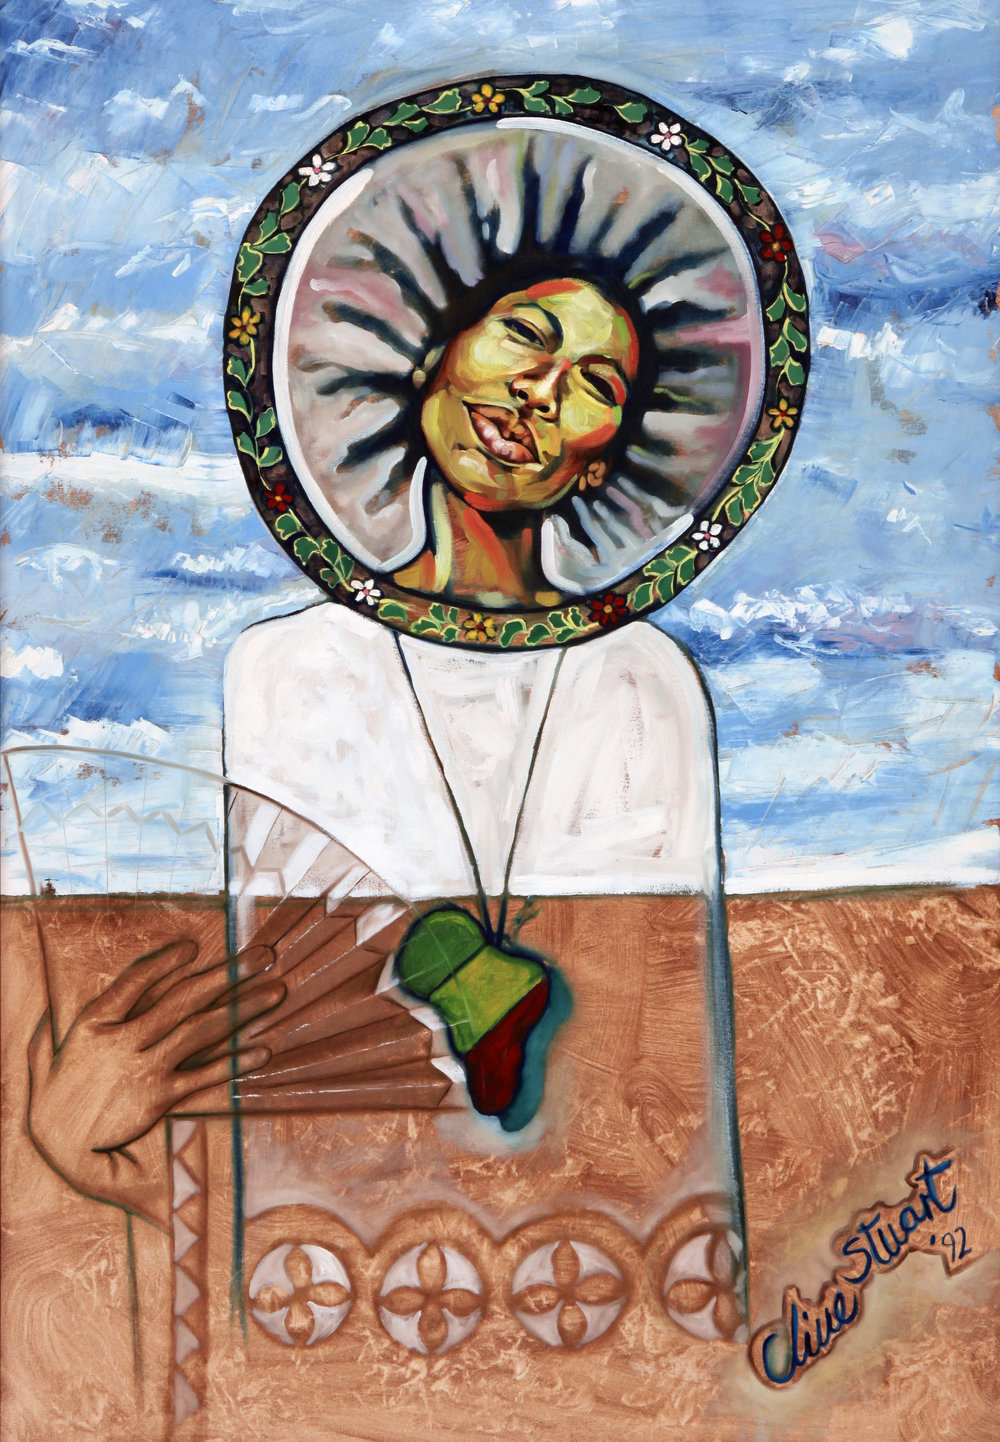 """Mother Earth"" (1992), Clive Stuart, acrylic on plywood, 48 x 43. Part of the D'Aguilar Art Foundation Collection."